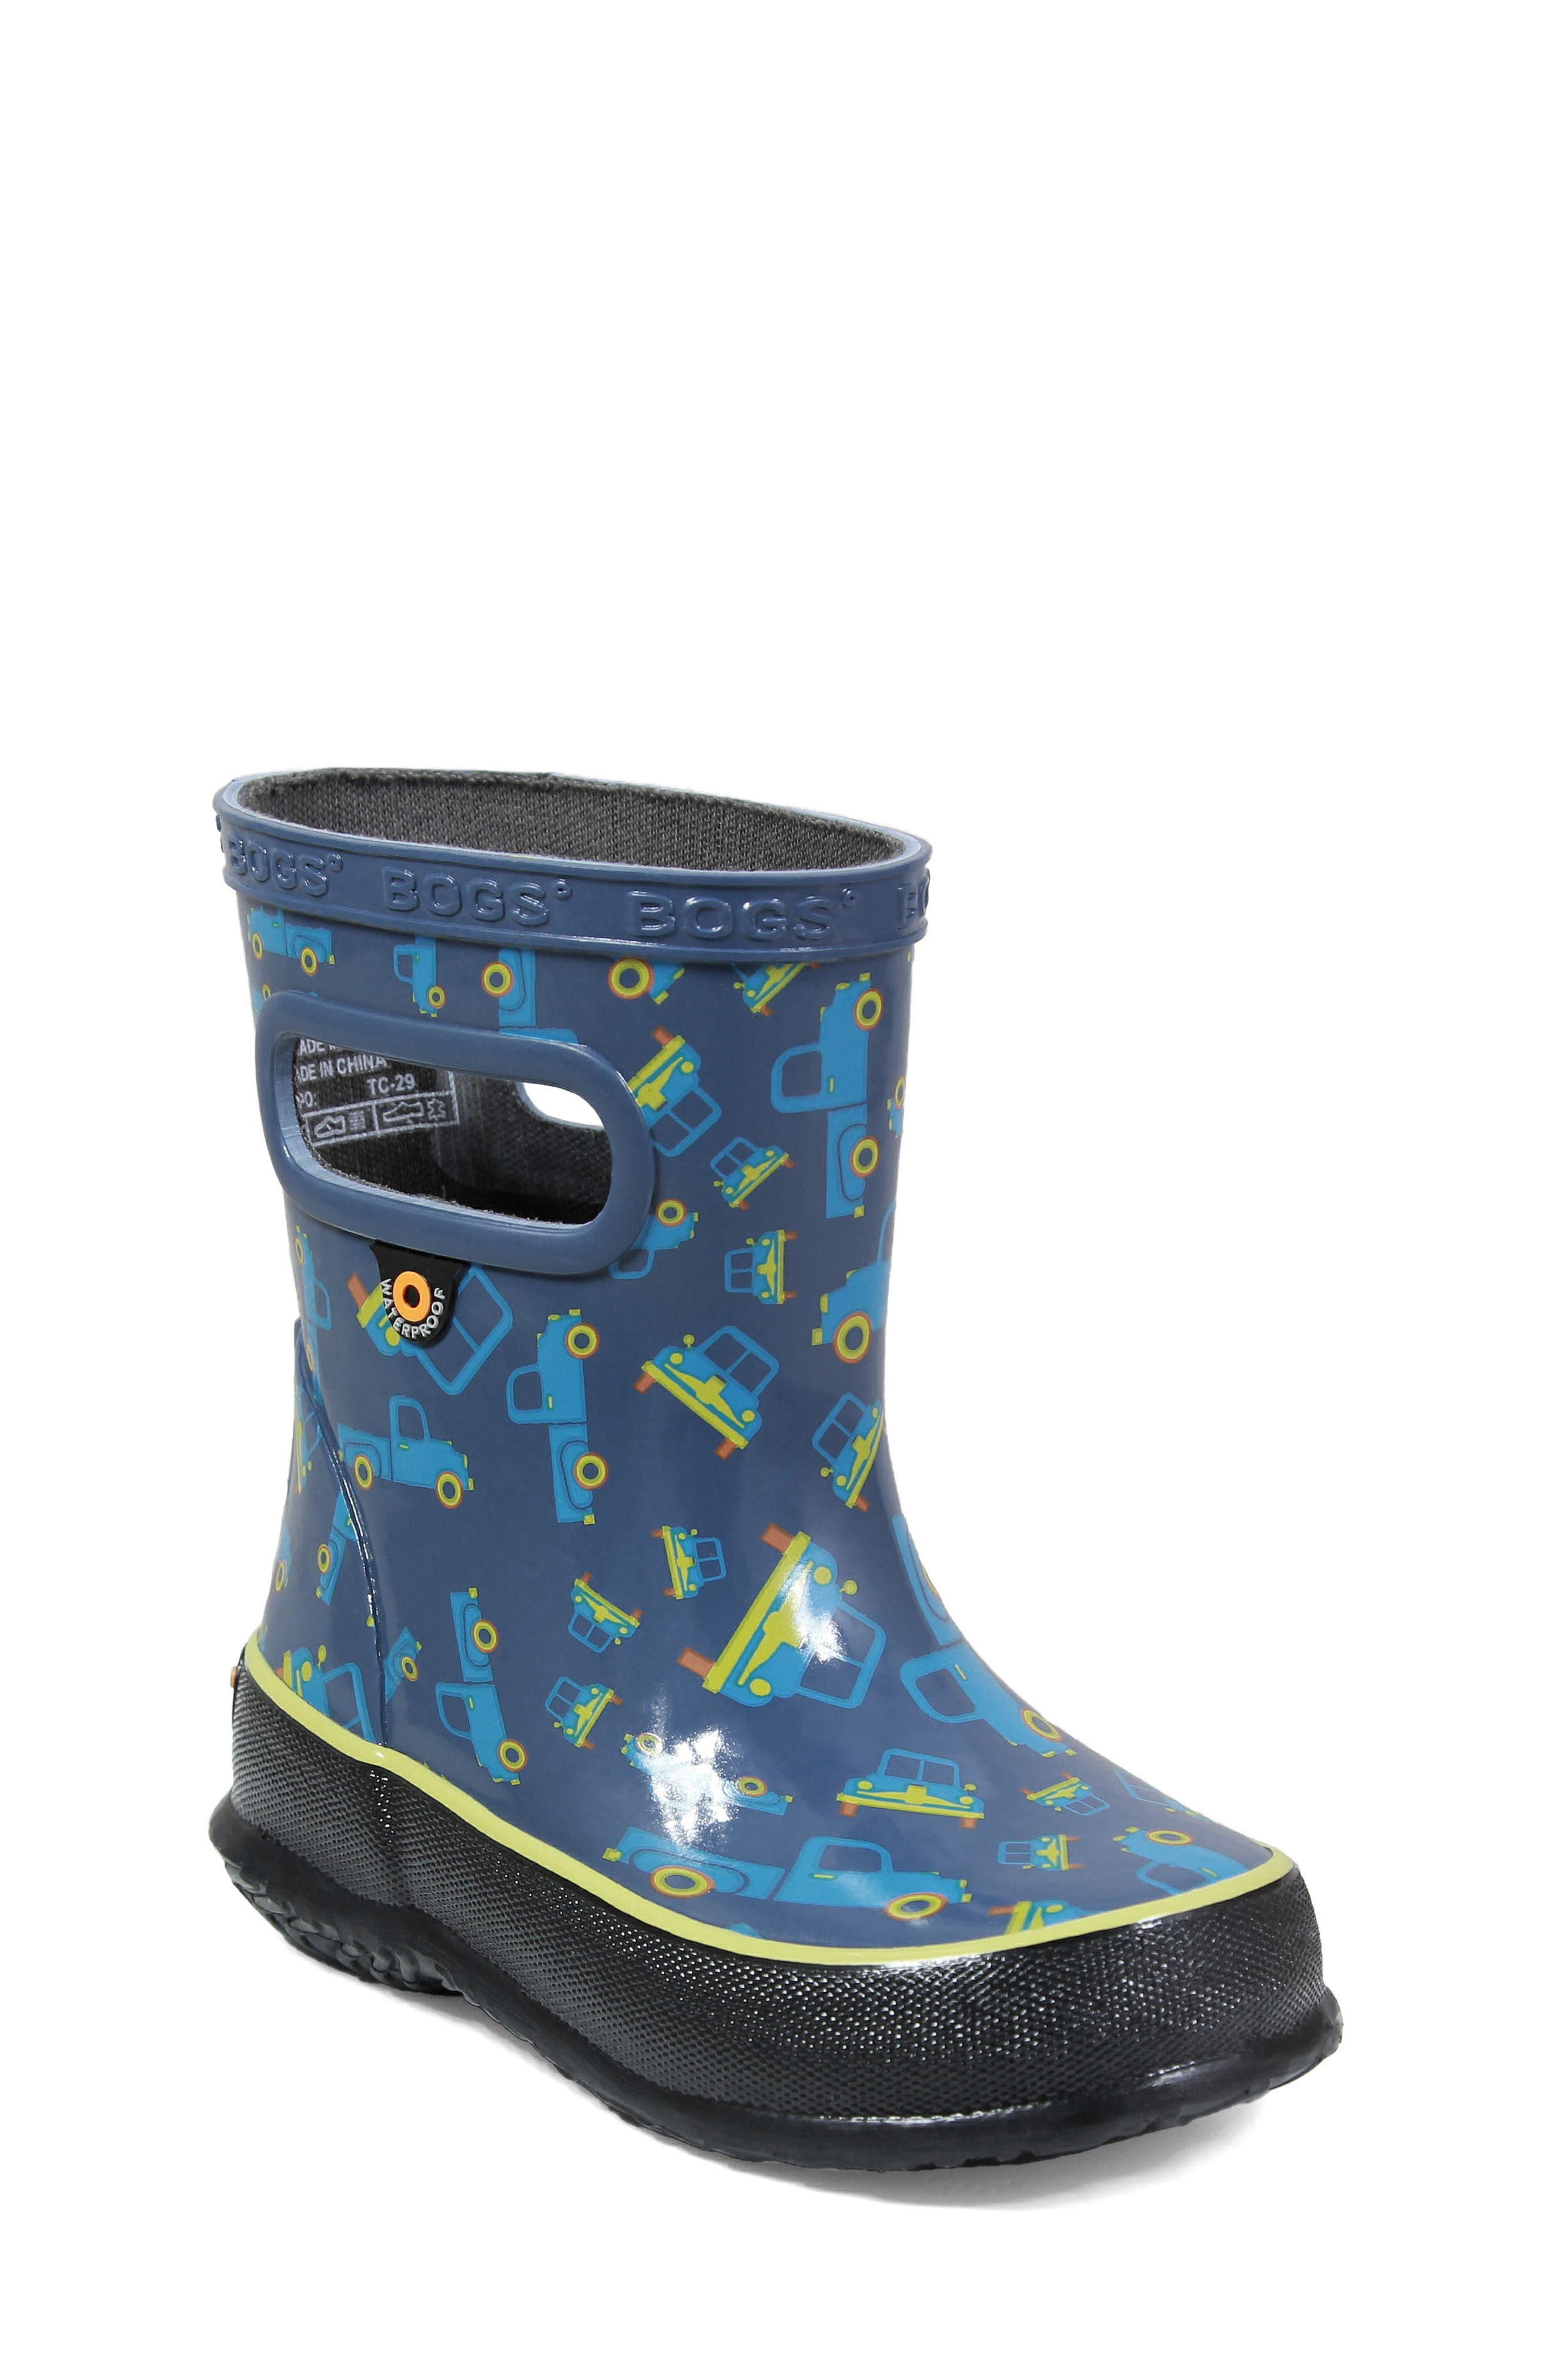 BOGS Skipper Truck Print Rubber Rain Boot, Main, color, 460